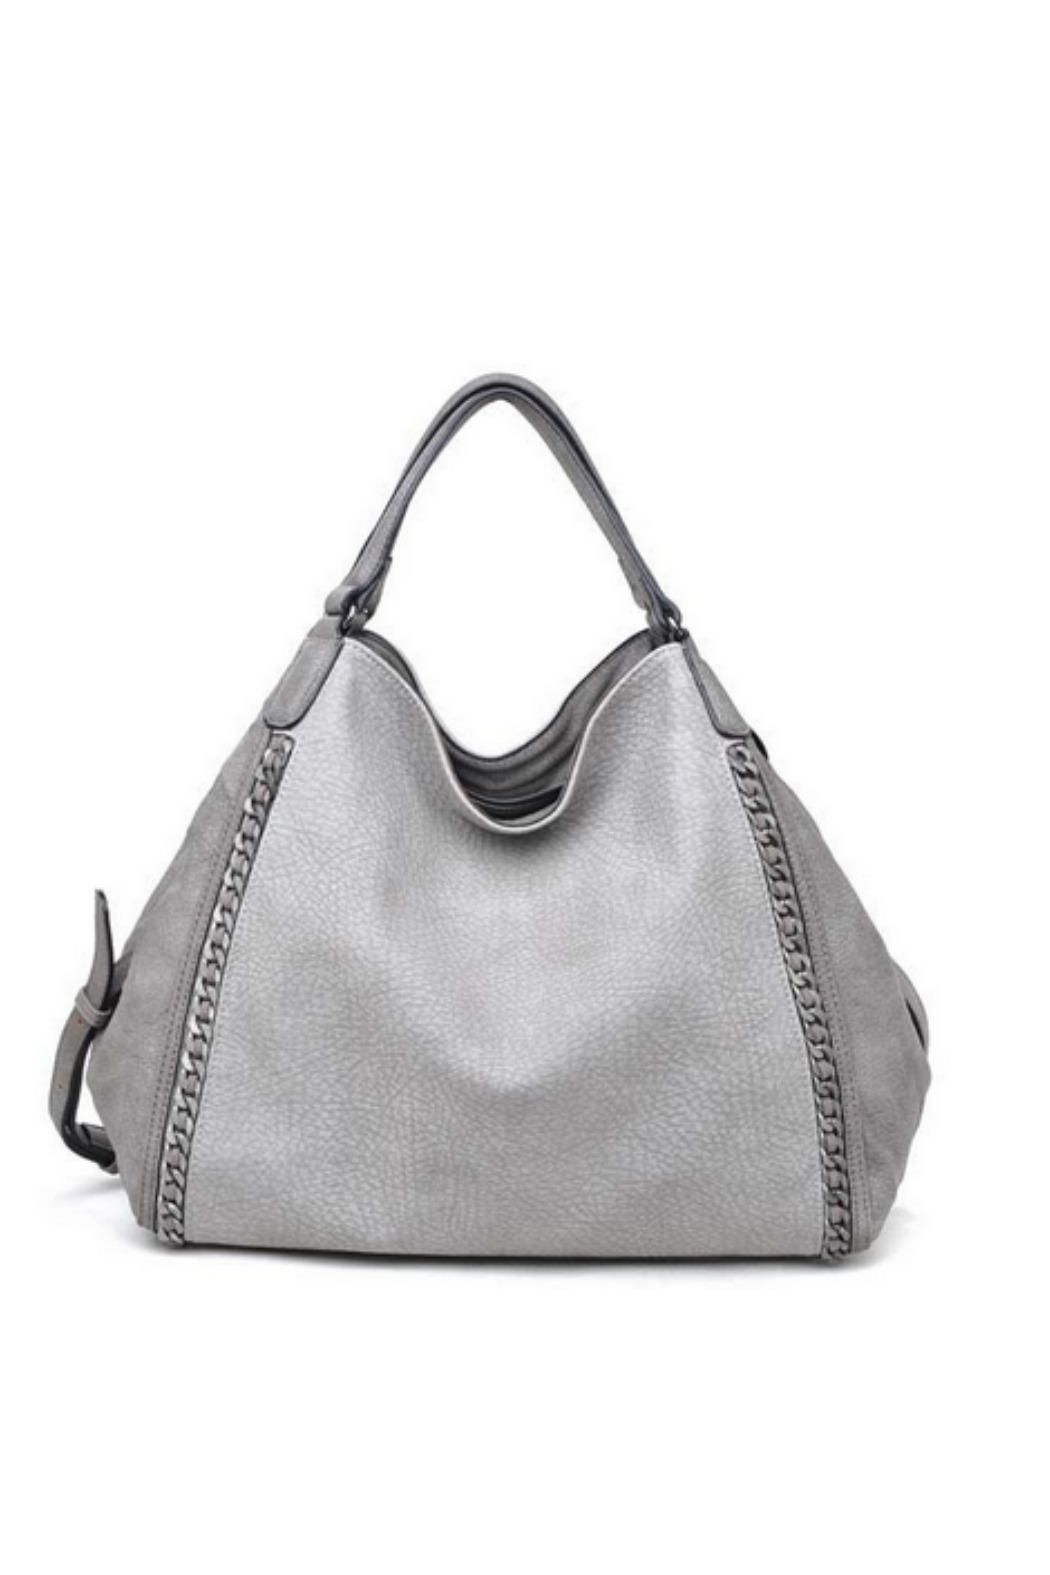 Urban Expressions Kira Hobo Bag from New York by Let's Bag It ...